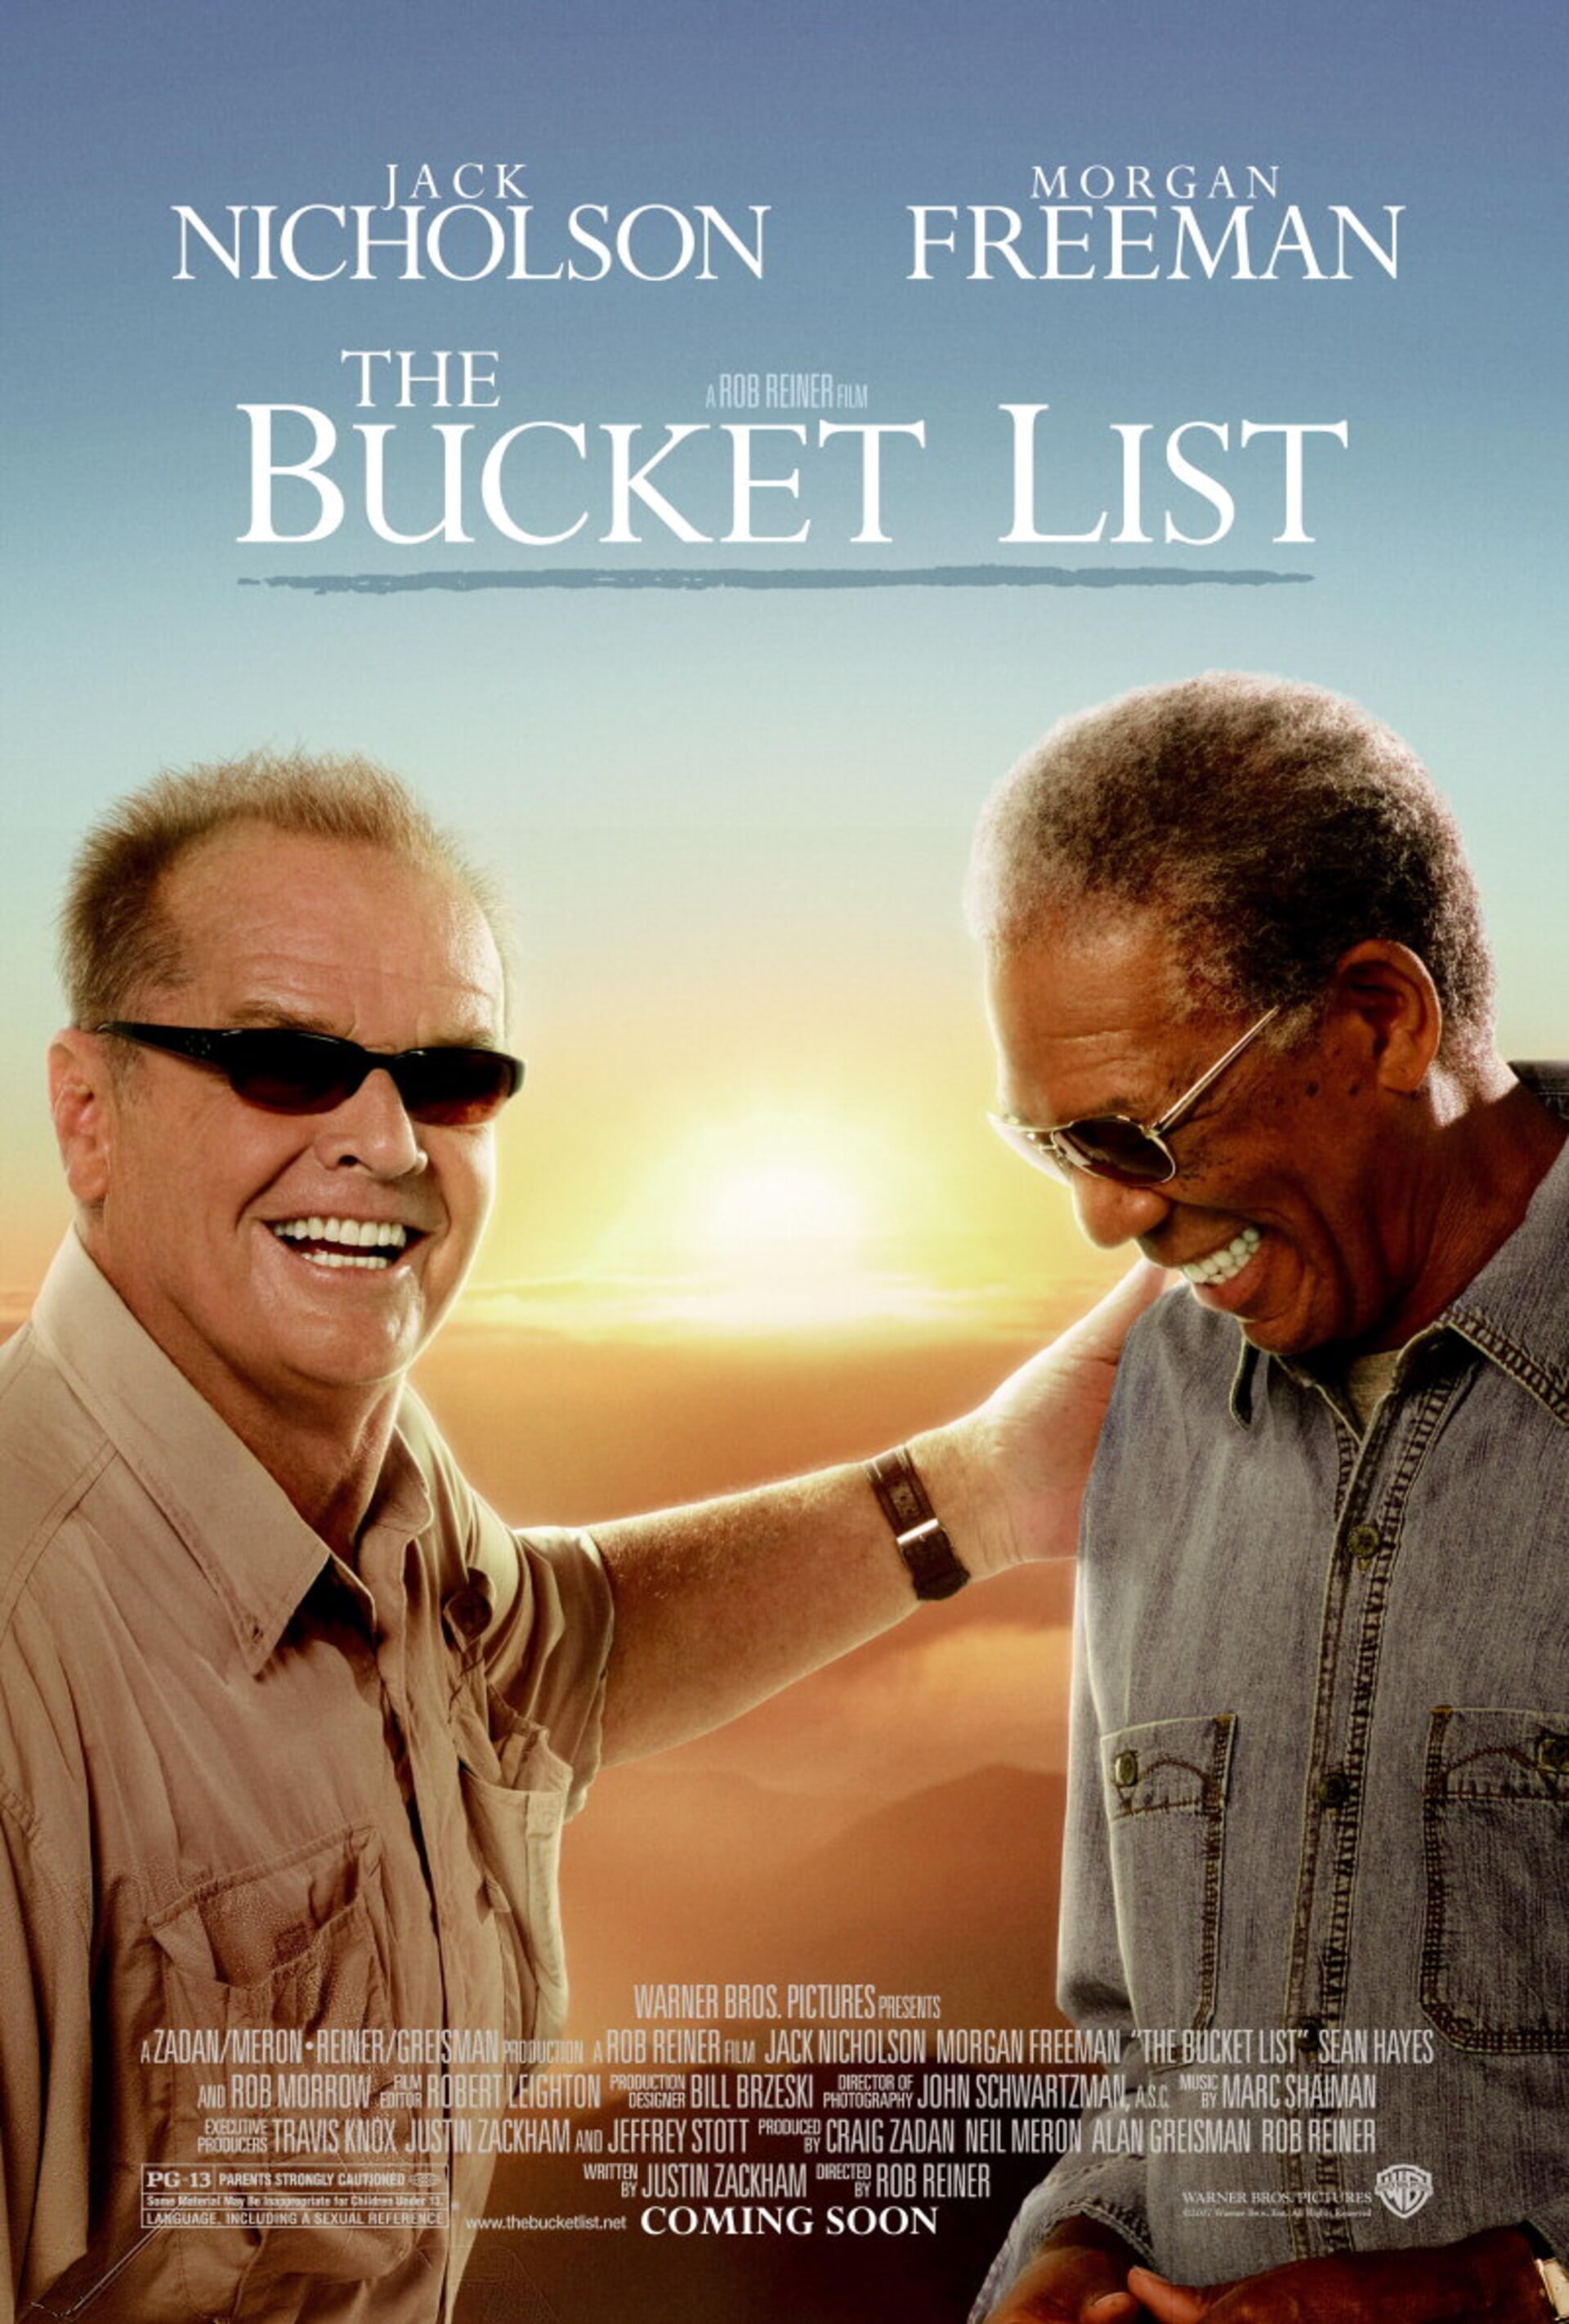 The Bucket List - Poster 1